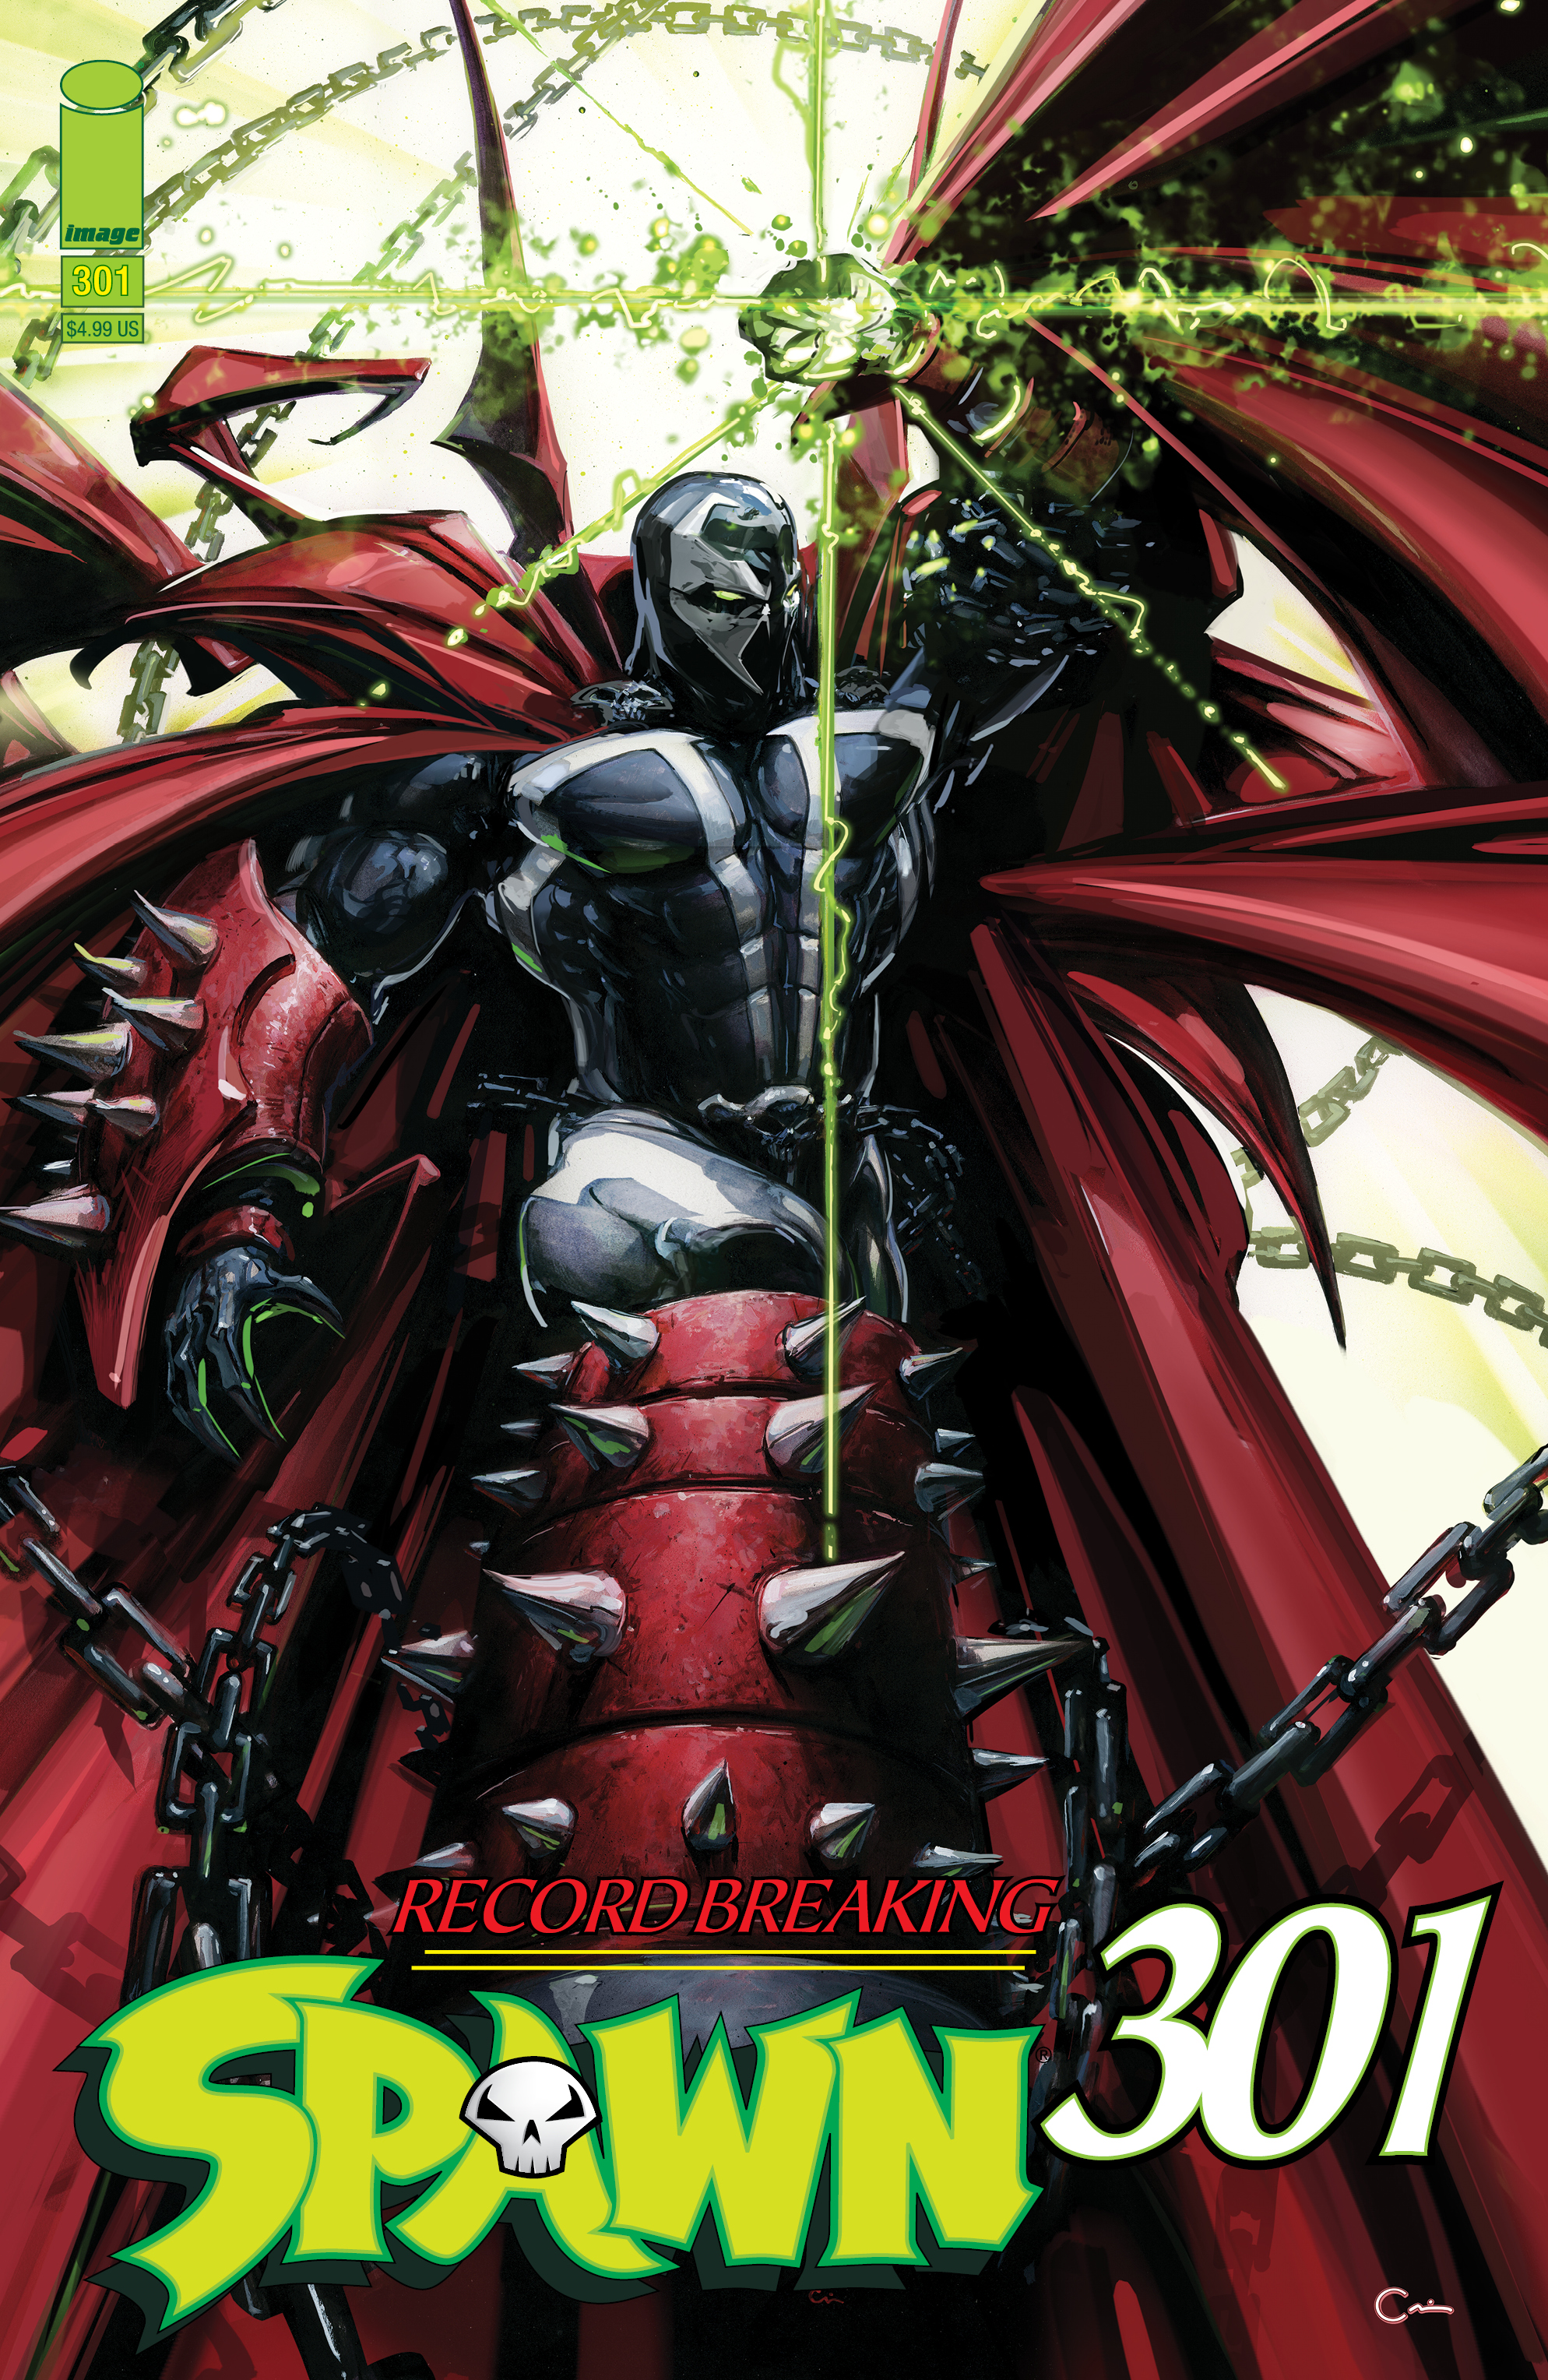 Spawn301_Crain_E_Dressed